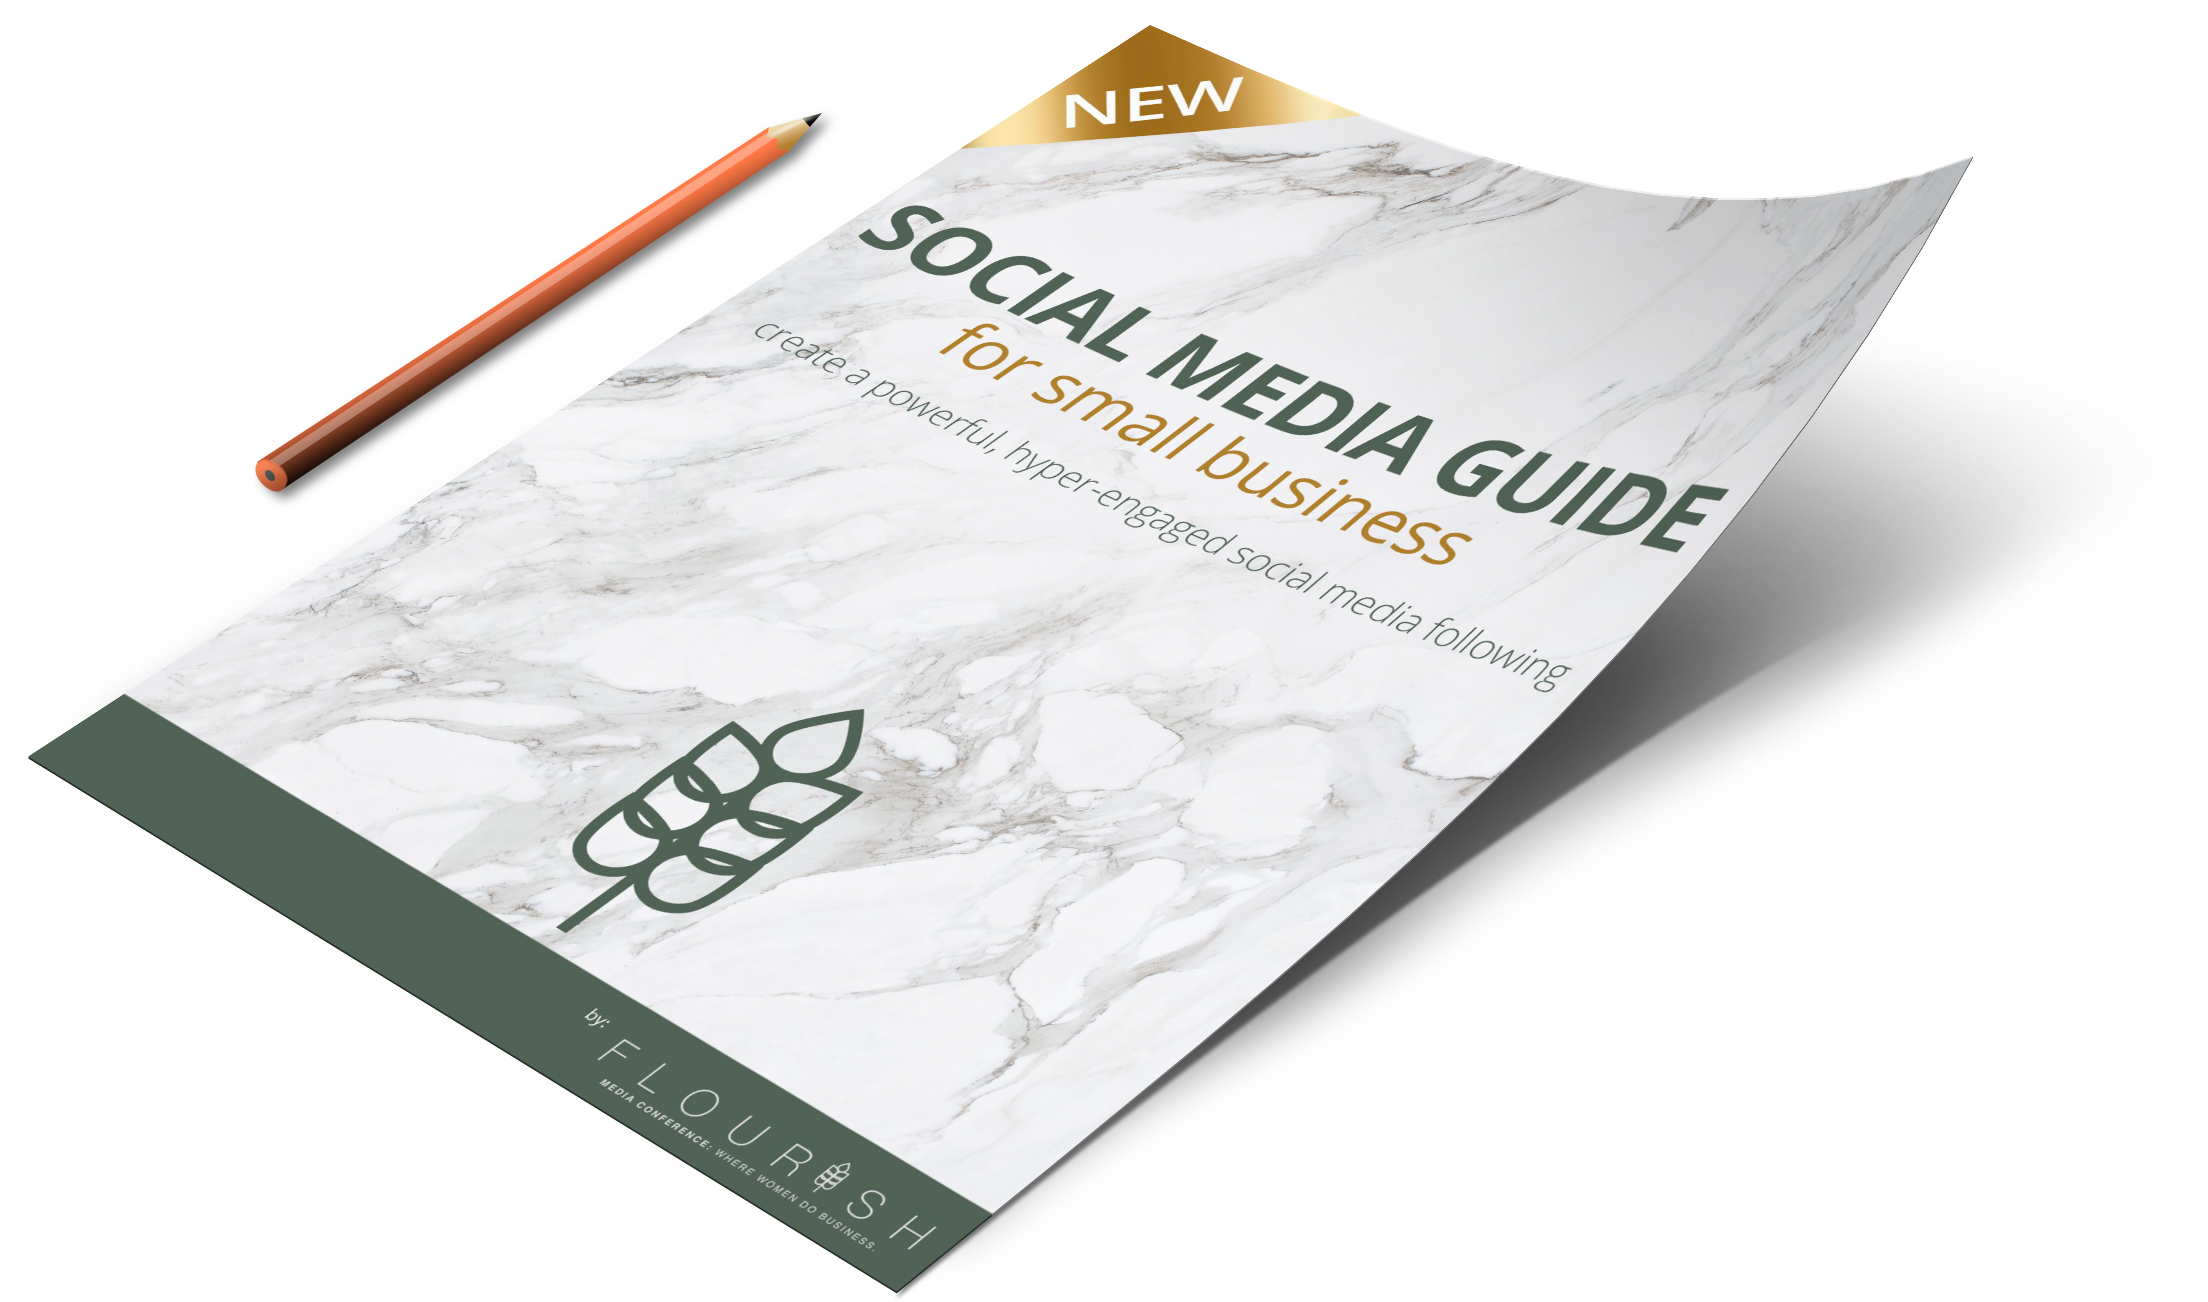 social-guide-mock.png